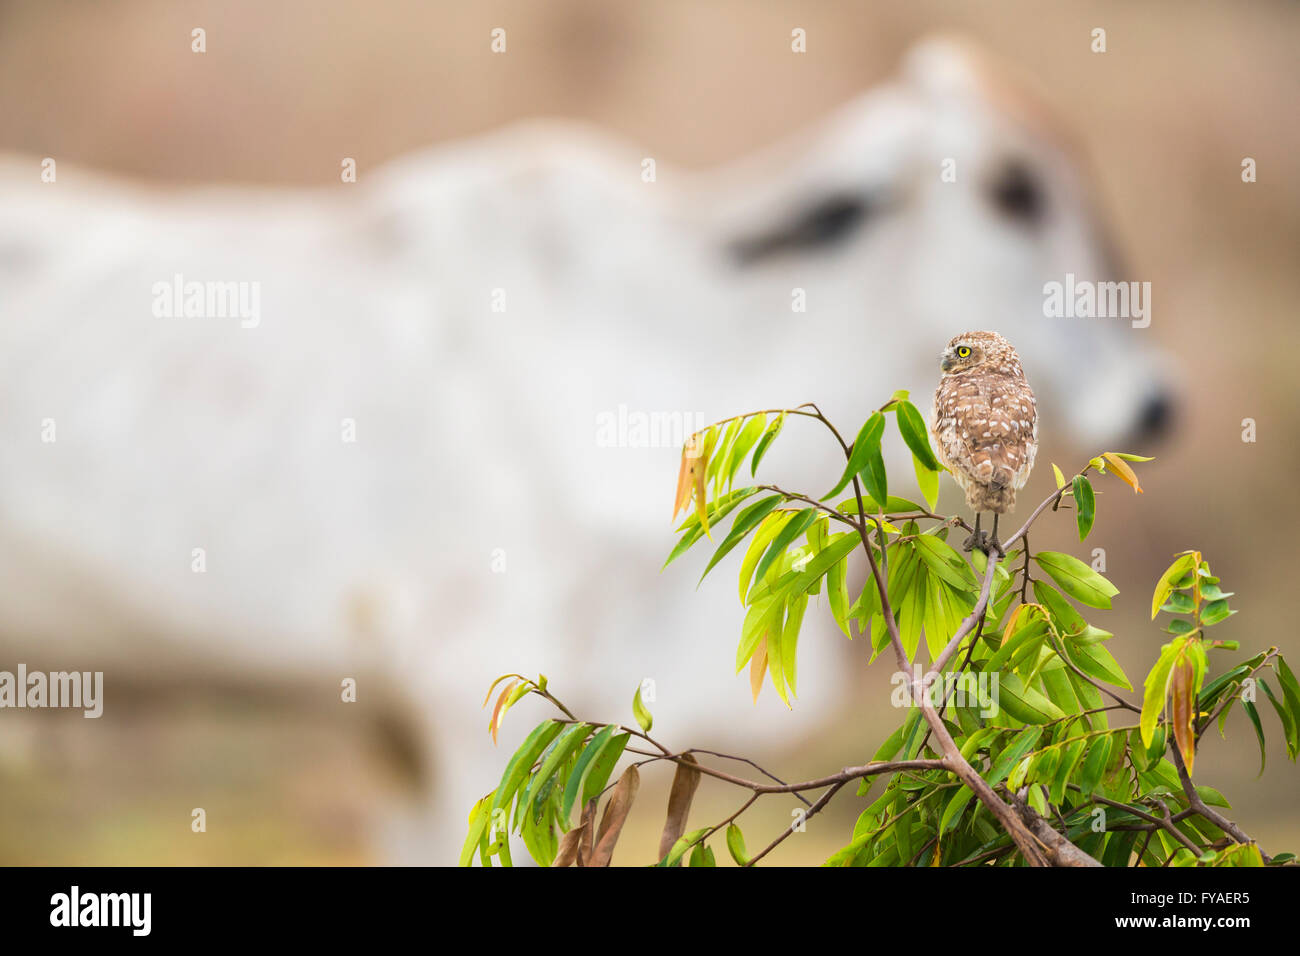 Burrowing owl Athene cinicularia, adult, perched on vegetation with cattle walking by, Los Llanos, Colombia, in - Stock Image